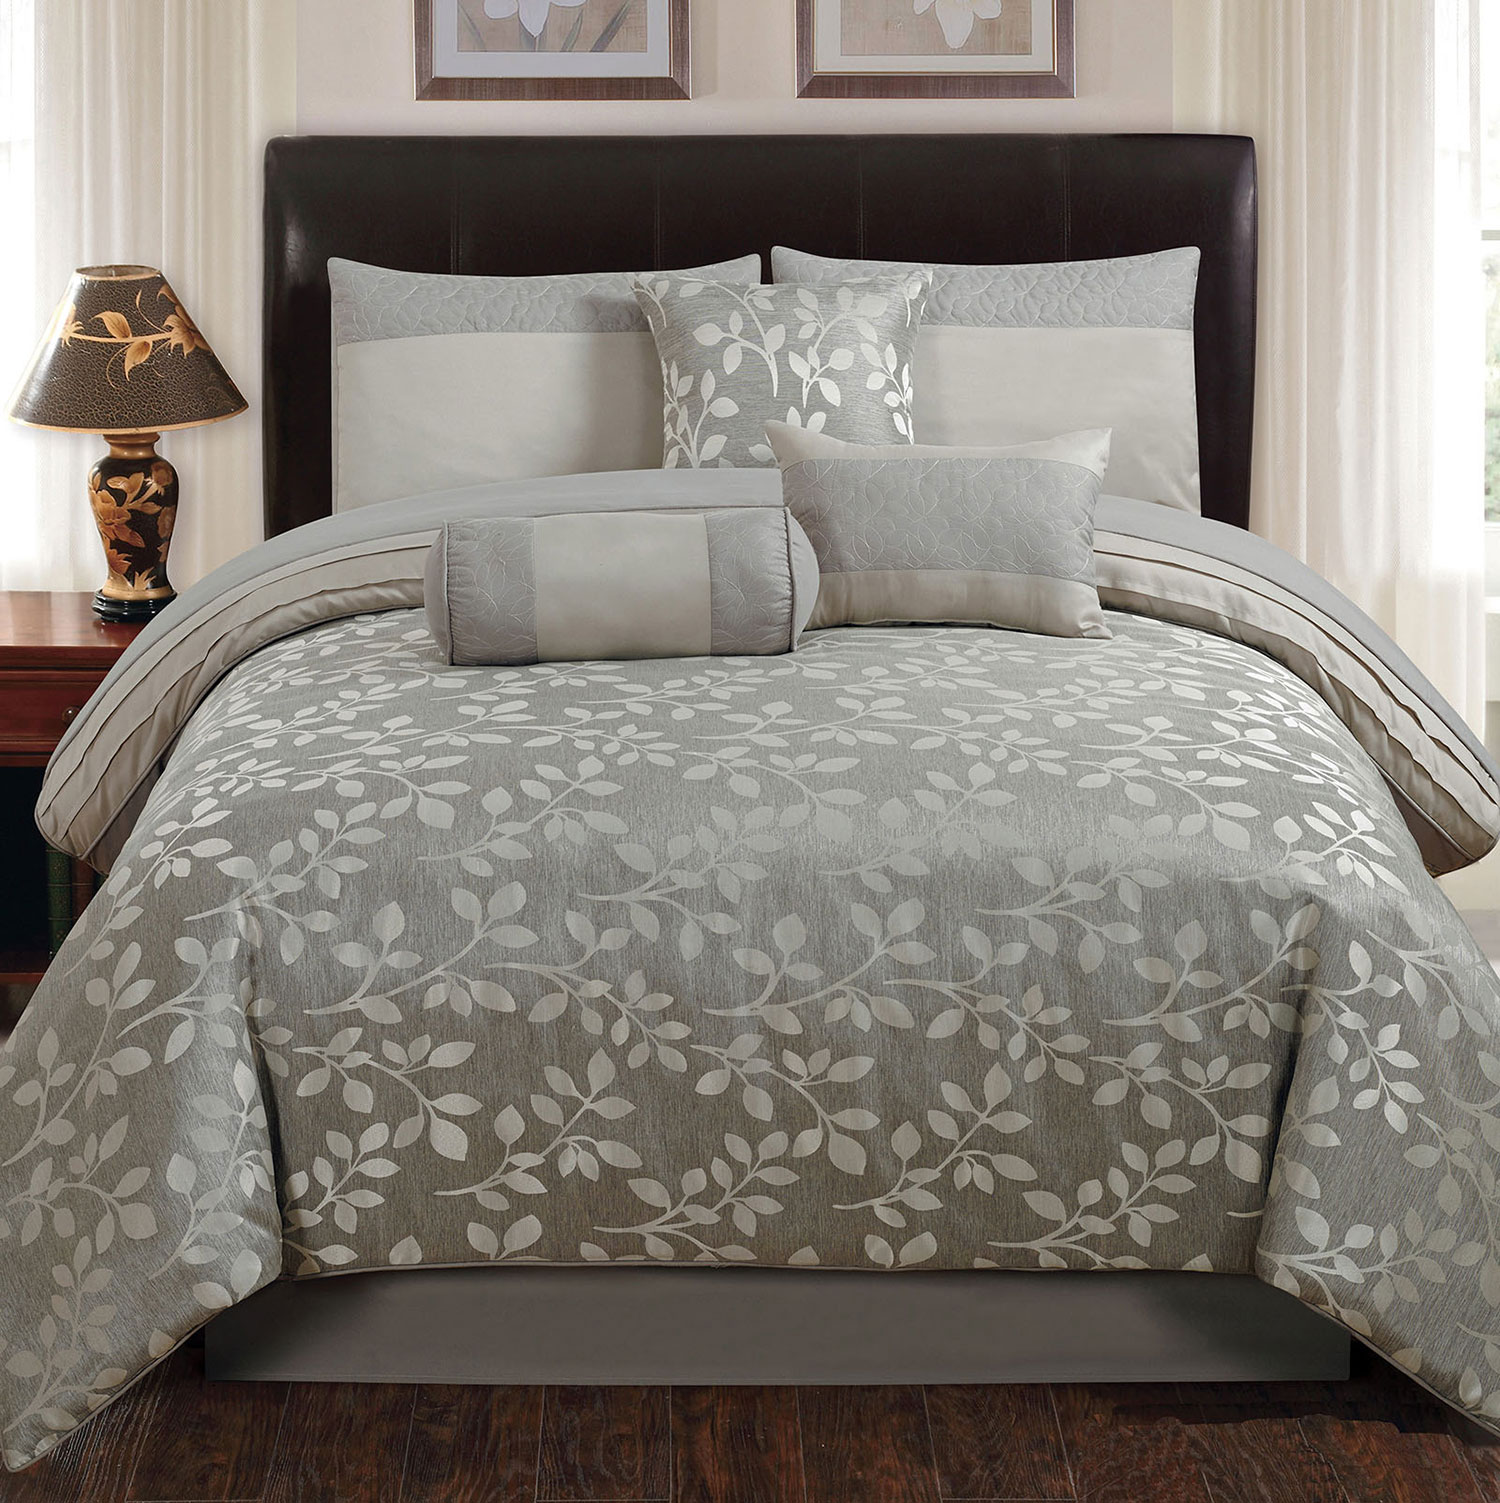 Hotel Collection Platinum: Platinum Leaves By Hallmart Collection By Hallmart